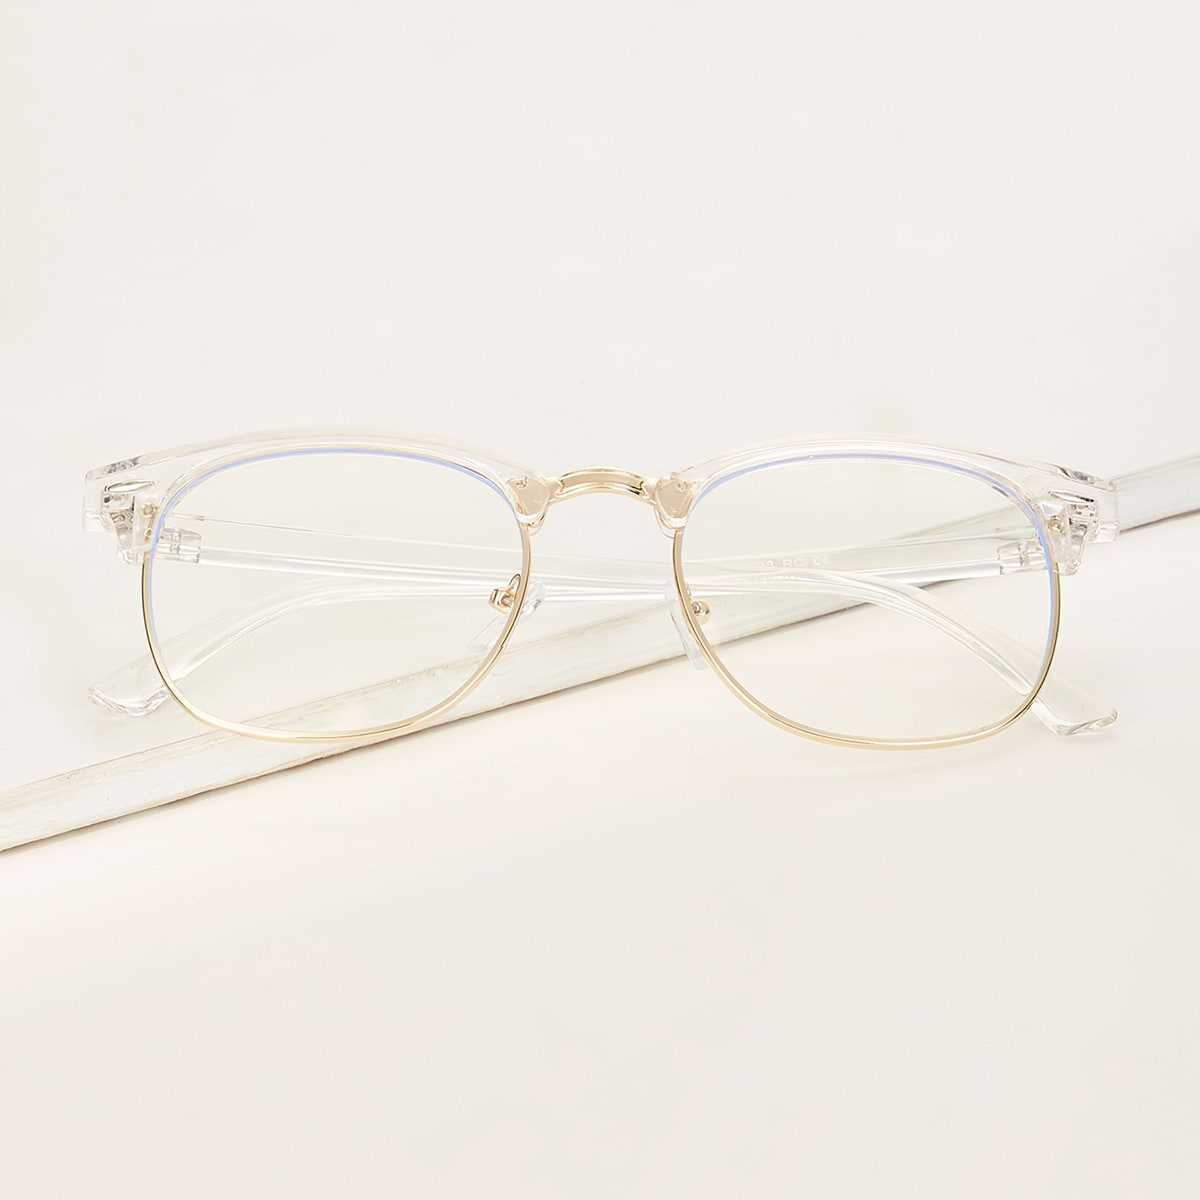 Guys Transparent Arms Metal Frame Glasses in White by ROMWE on GOOFASH